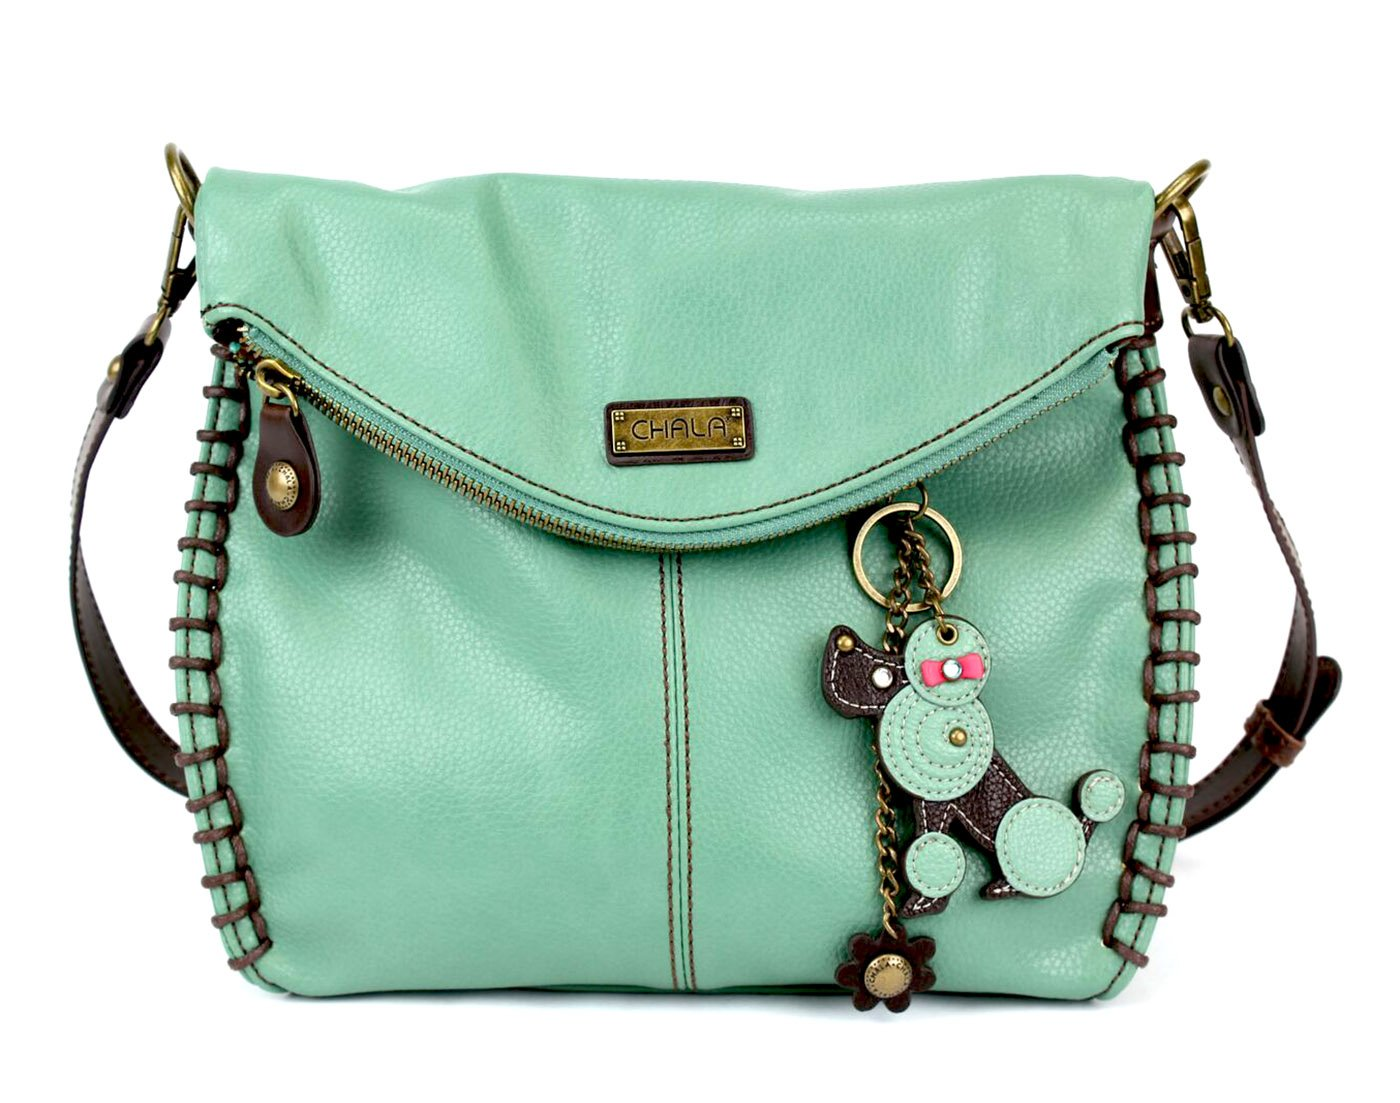 Chala Charming Crossbody Bag With Flap Top | Flap and Zipper Teal Cross-Body Purse or Shoulder Handbag with Fob - Teal - Poodle